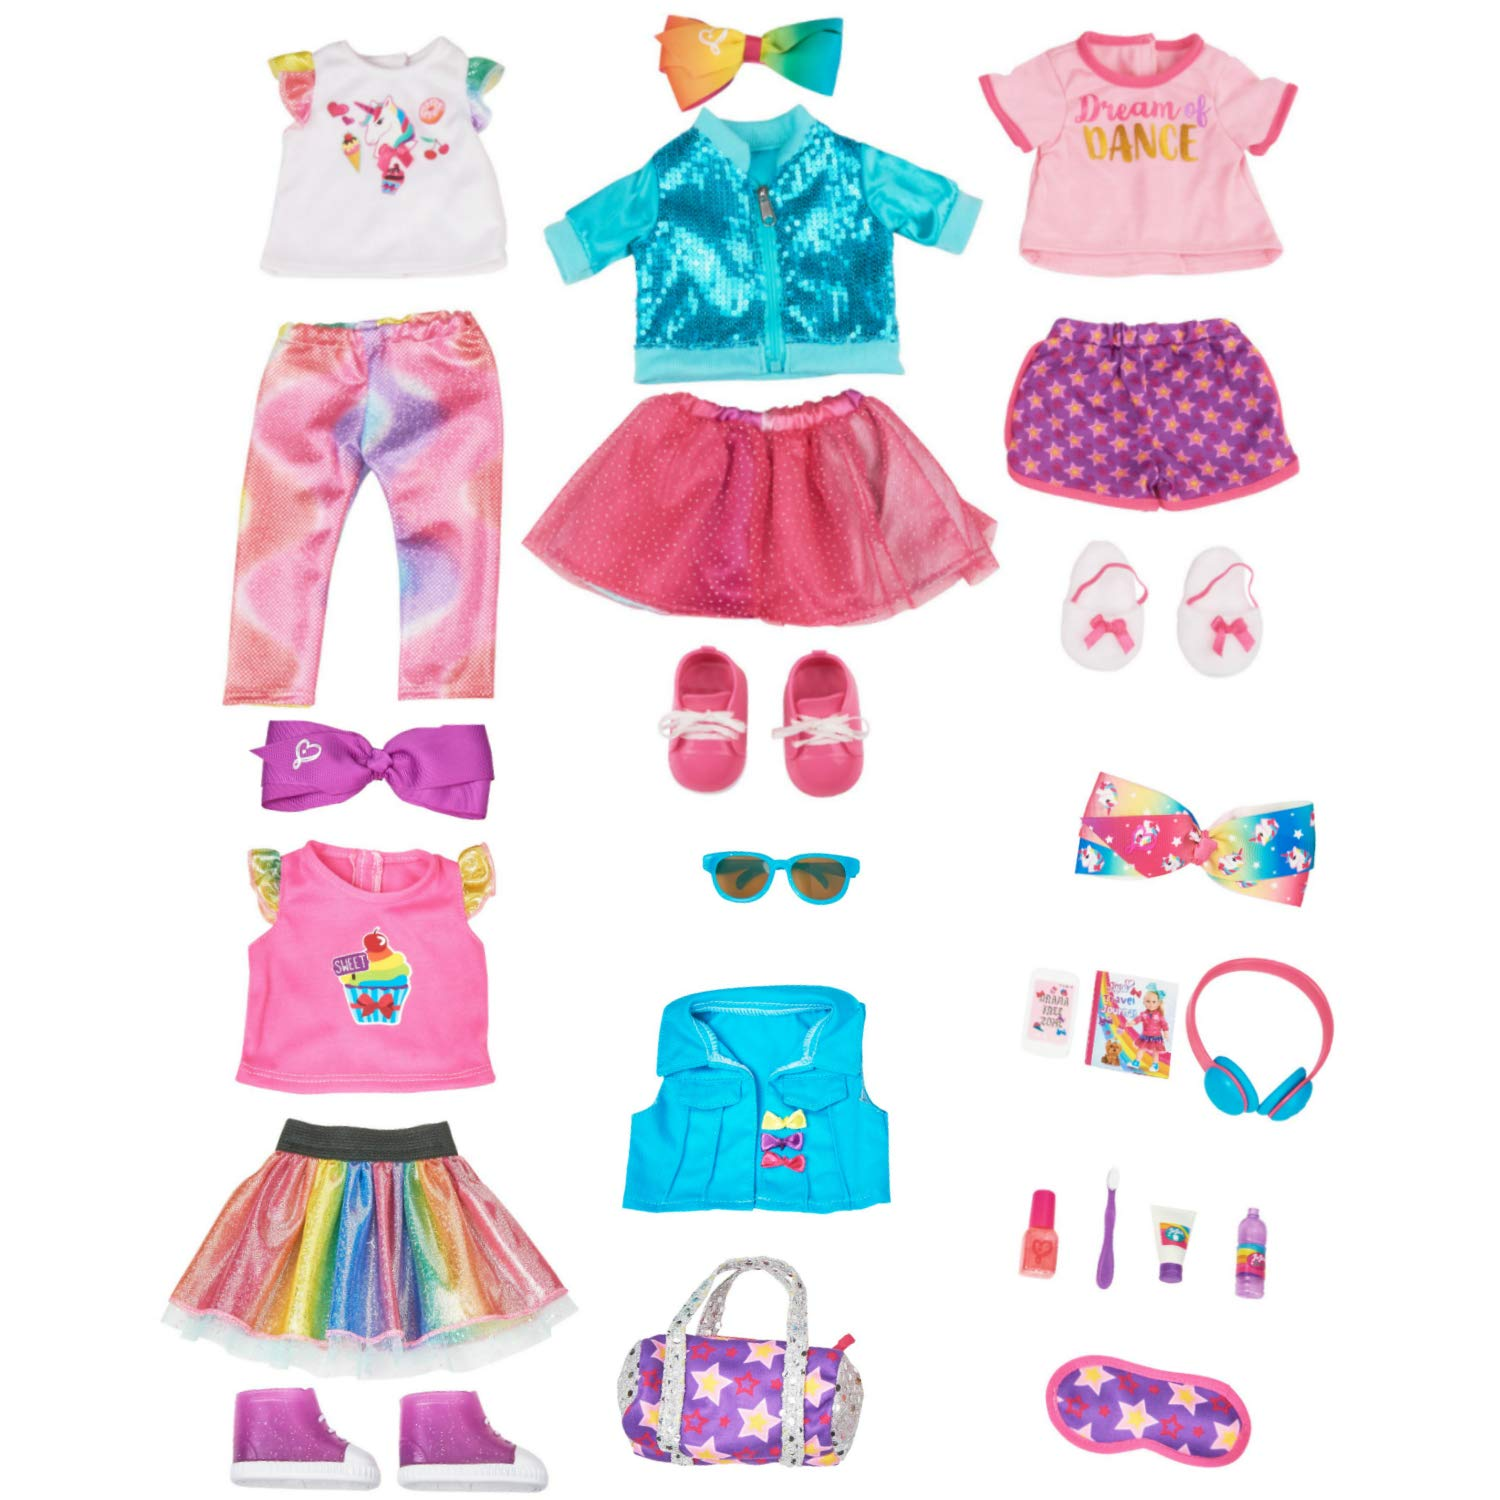 2bd7cac5ef279 Amazon.com: myLife Brand Products JoJo Travel Set and JoJo Doll Outfits, 24  Piece Bundle: Toys & Games